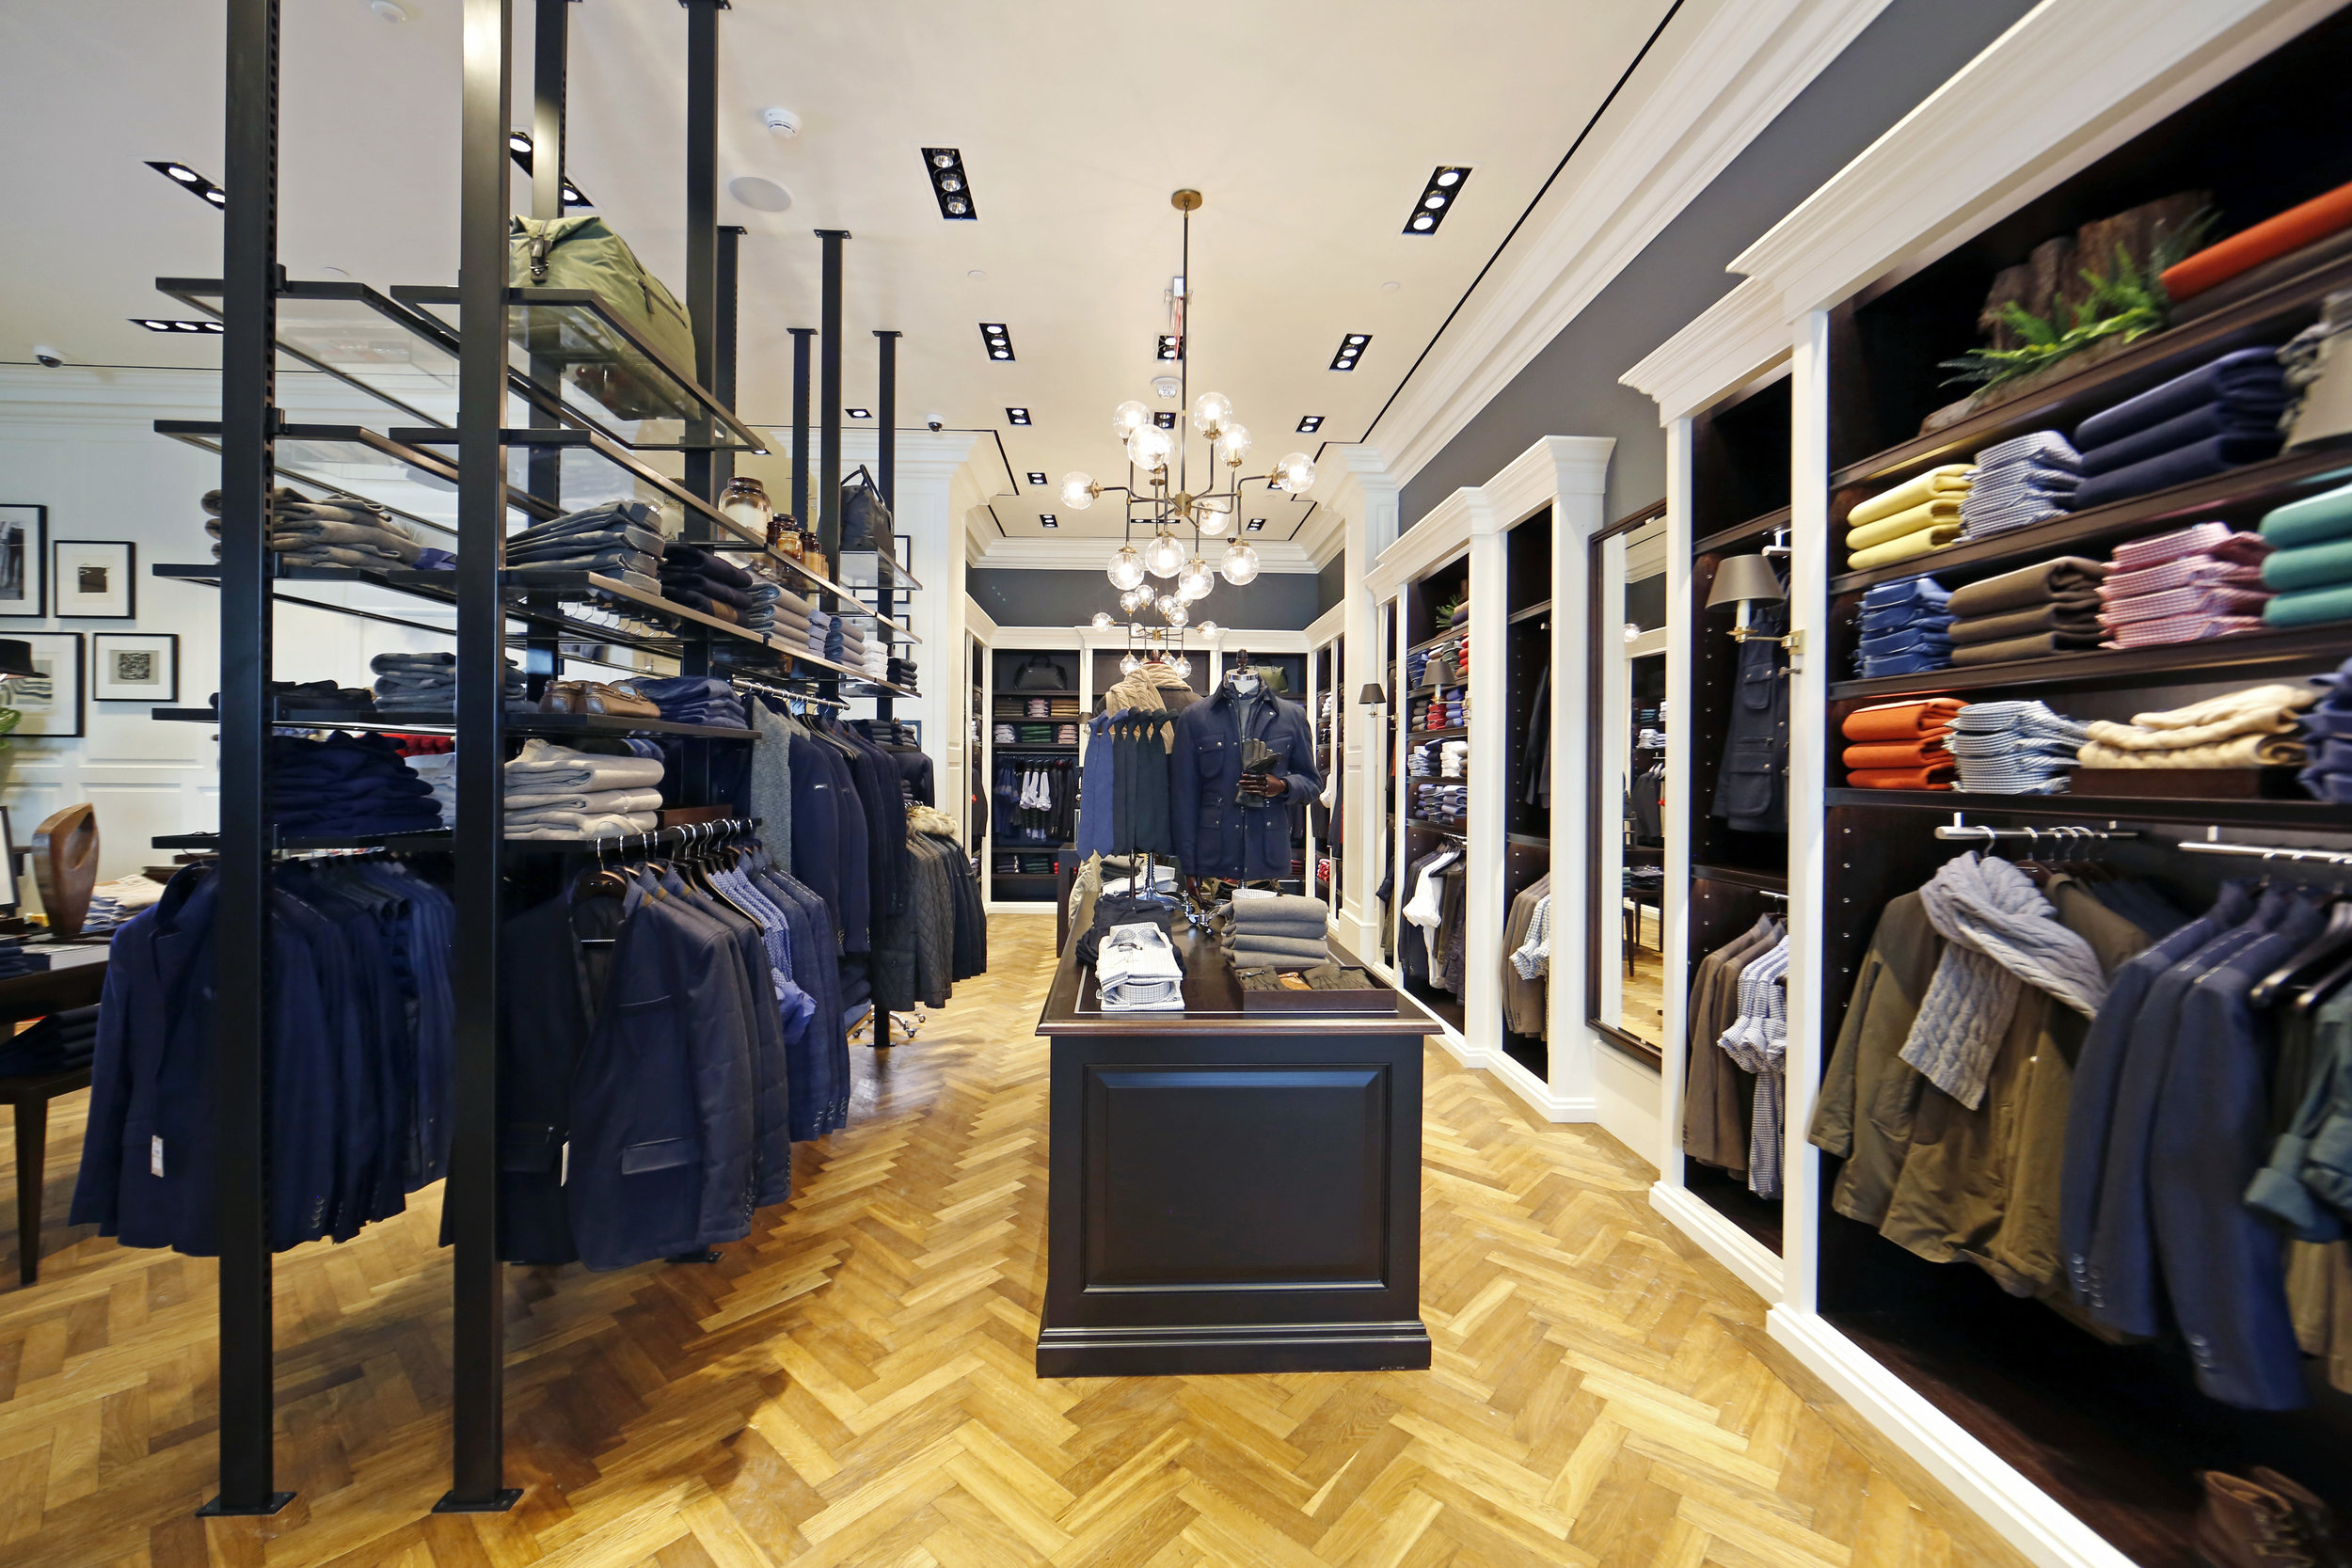 Clothes on display racks and shelves in the mid-century modern interior of Hackett London in Woodbury Common Premium outlet, New York. MEP designed by 2L Engineering.